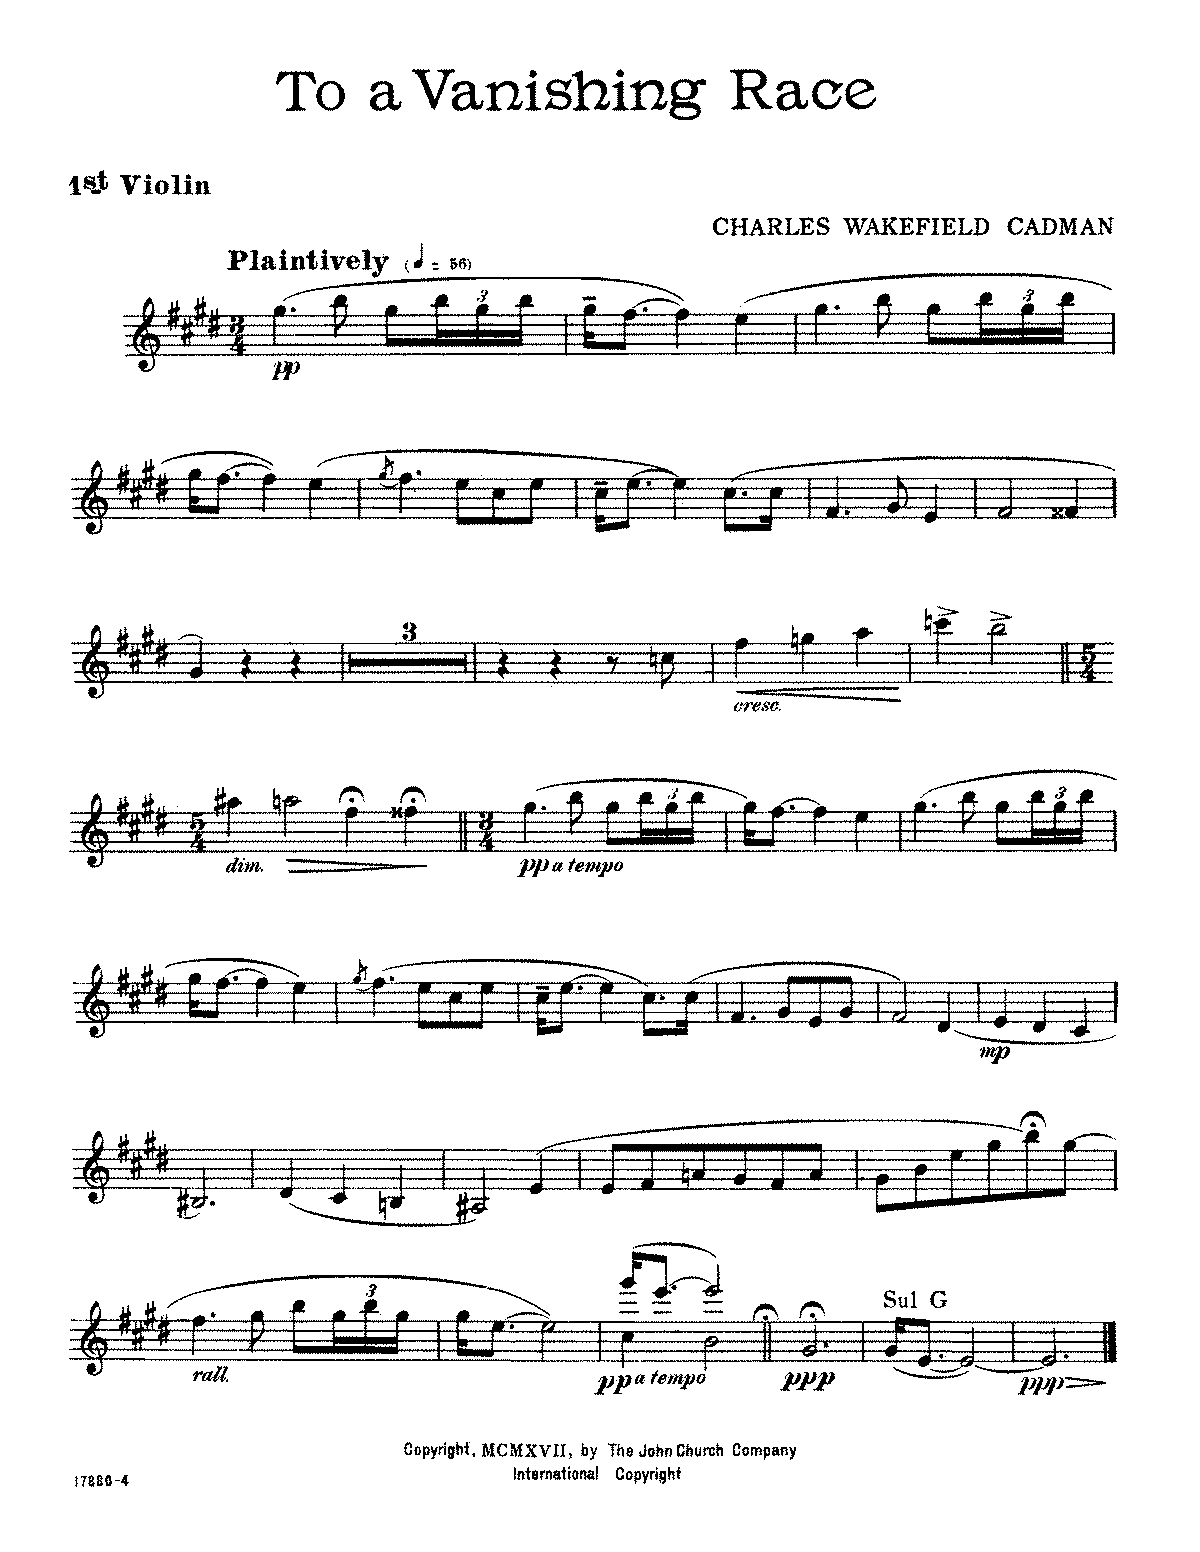 PMLP418206-CADMAN Vanishing Race string orch score, parts.pdf